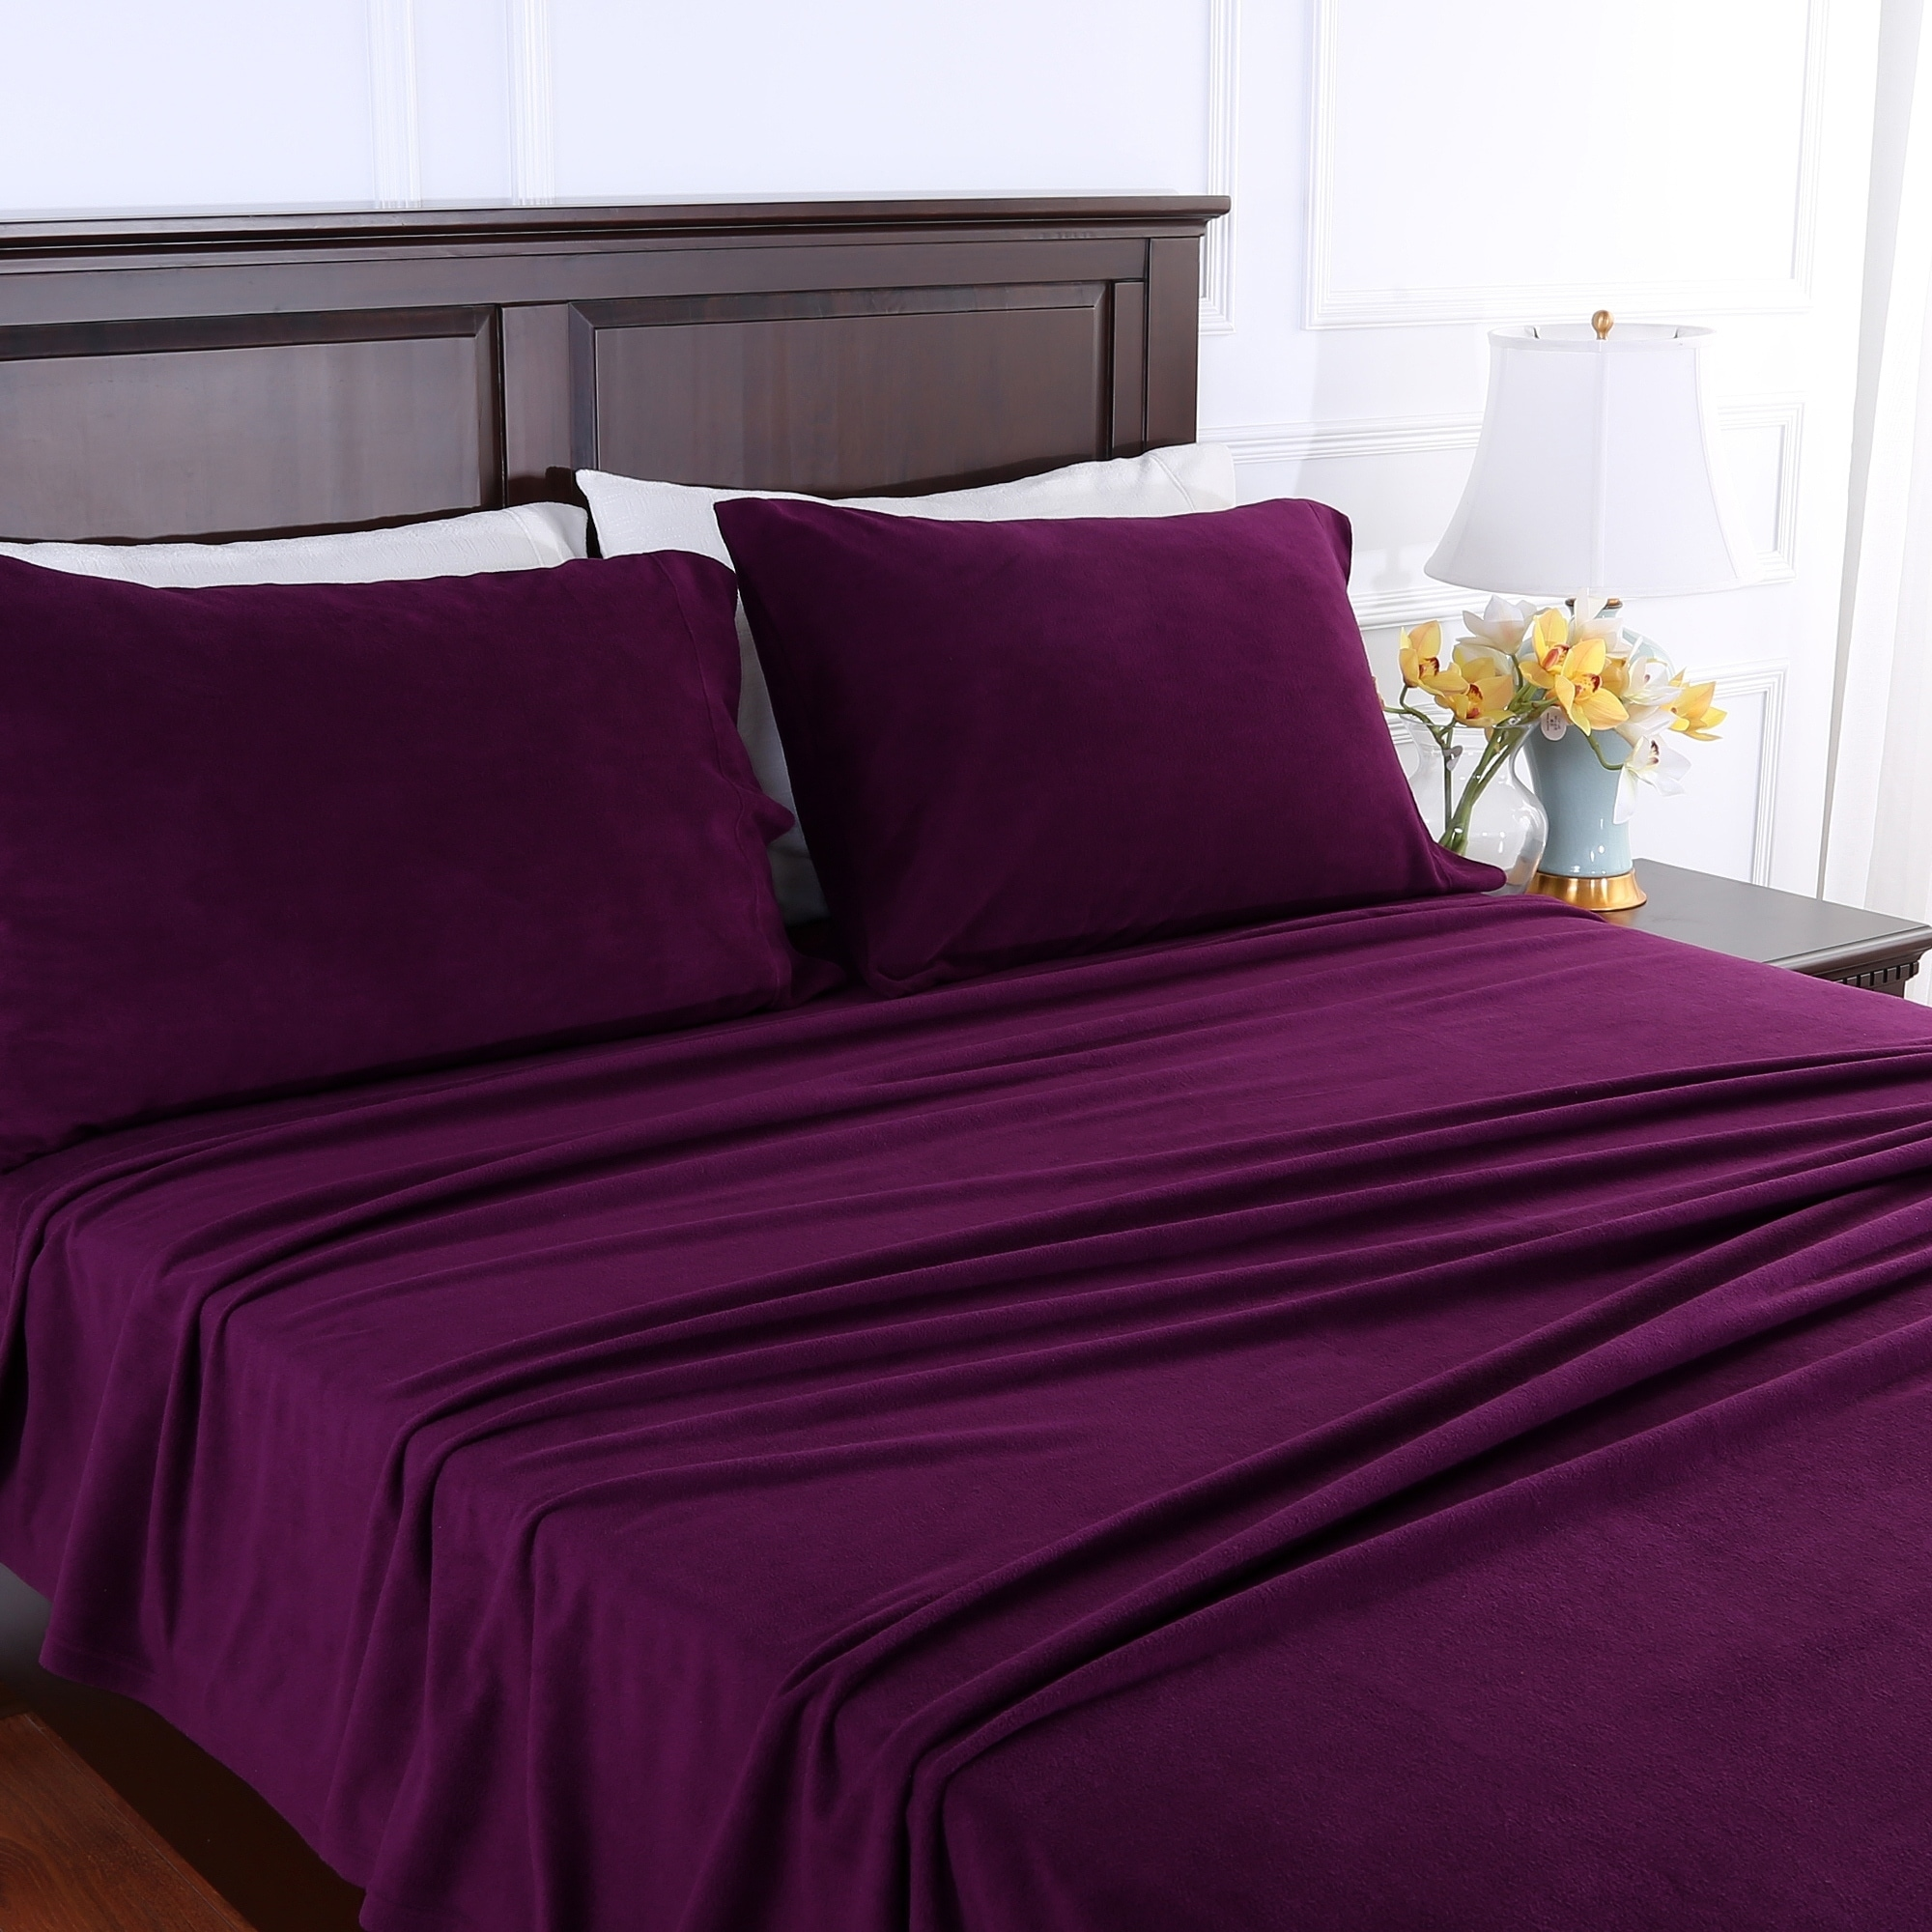 Genuine Microfleece Sheet Set Warm Winter Color Palette Free Shipping On Orders Over 45 21018920